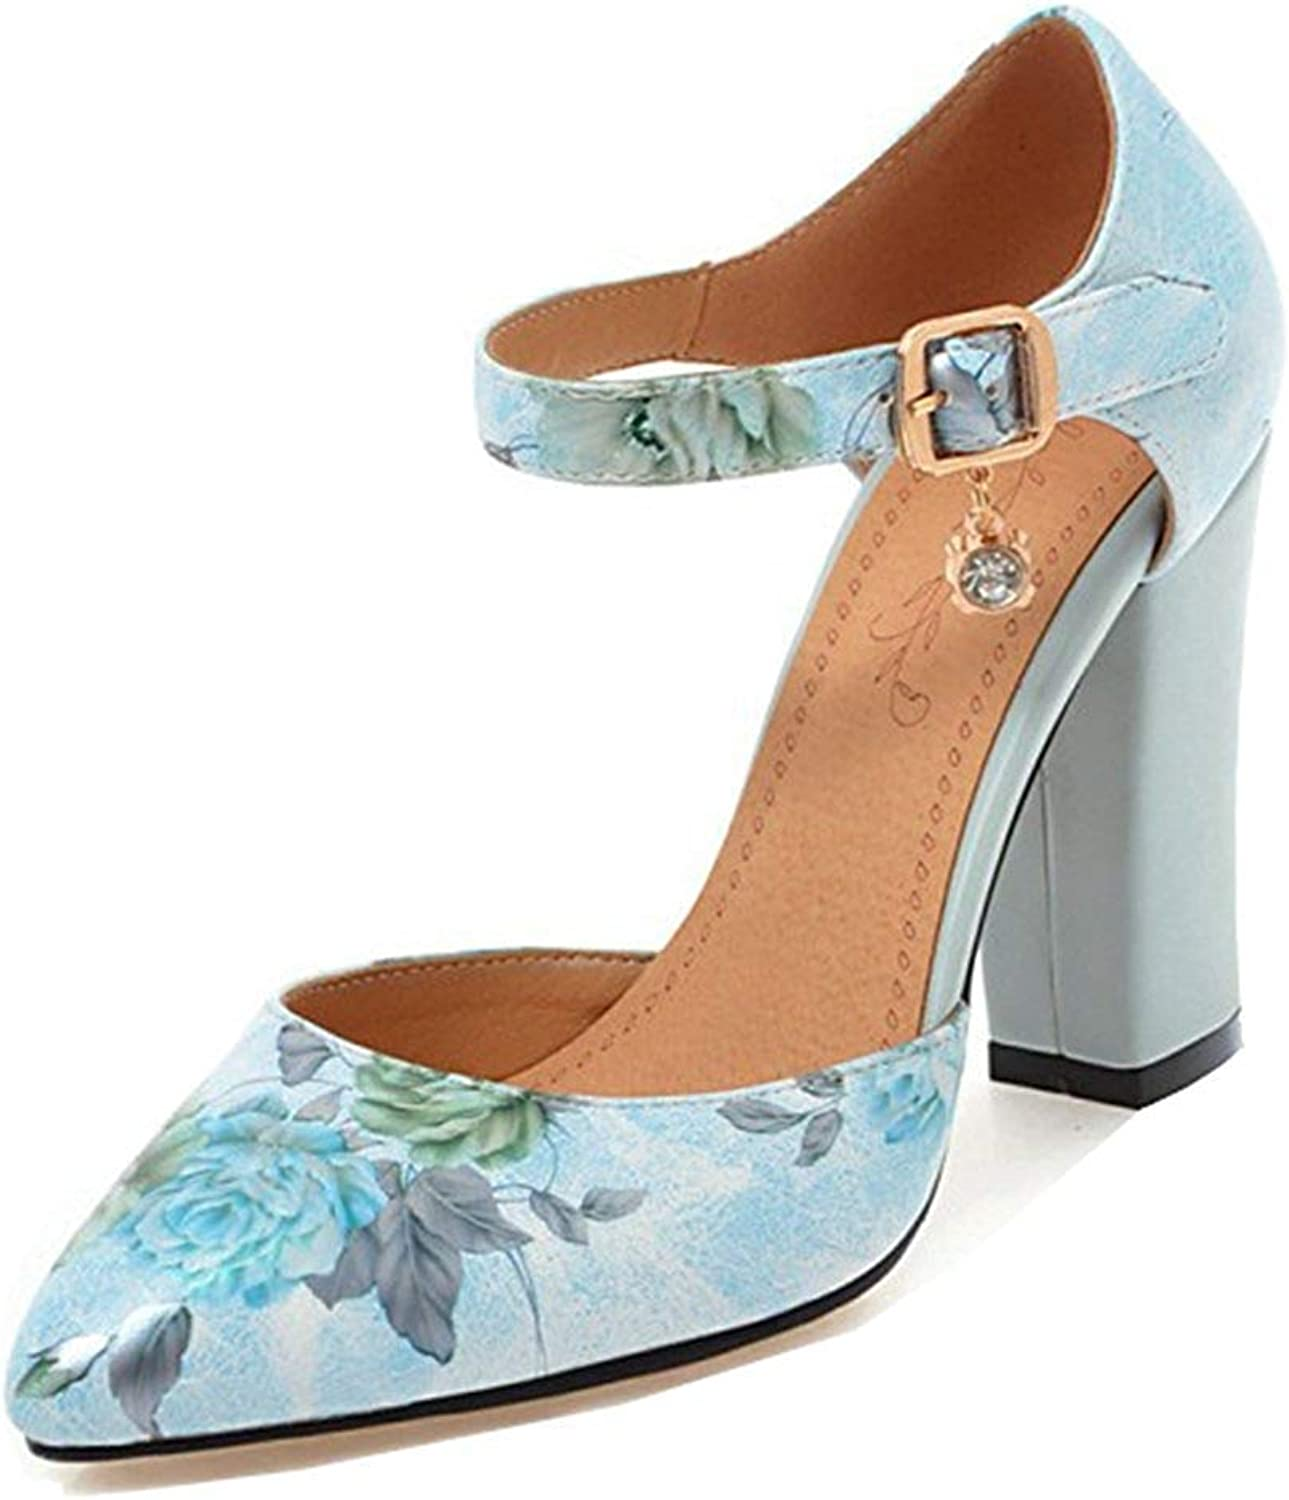 Unm Women's Pretty Floral Buckled Dressy Stacked High Heel Pointed Toe D'Orsay Ankle Strap Pumps shoes